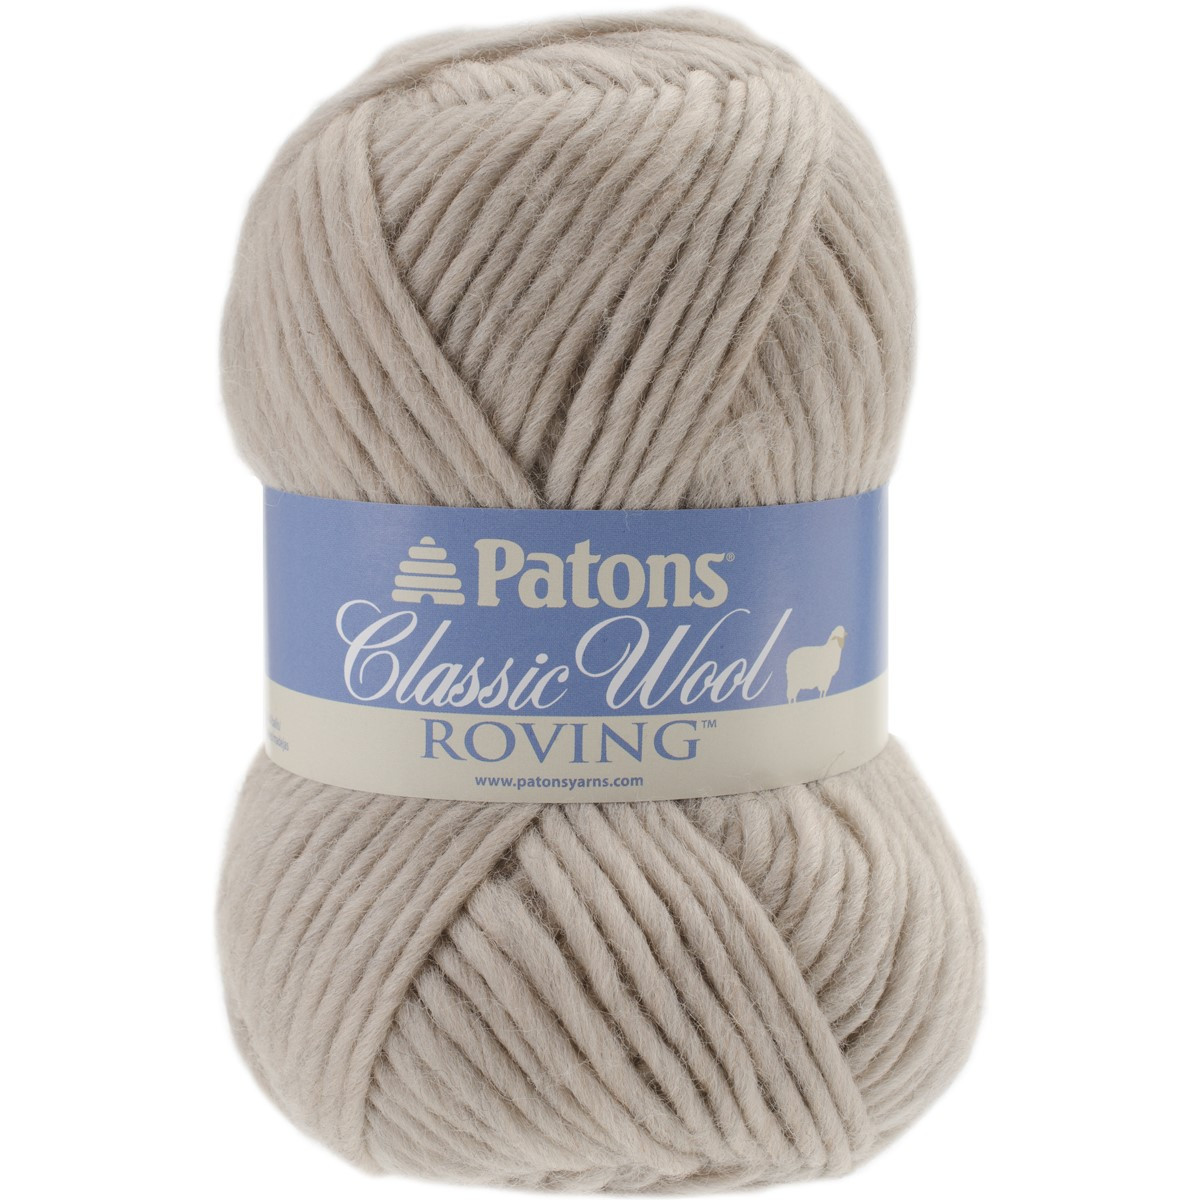 Awesome Patons Classic Wool Roving Yarn Yellow Patons Roving Wool Of Innovative 36 Pictures Patons Roving Wool